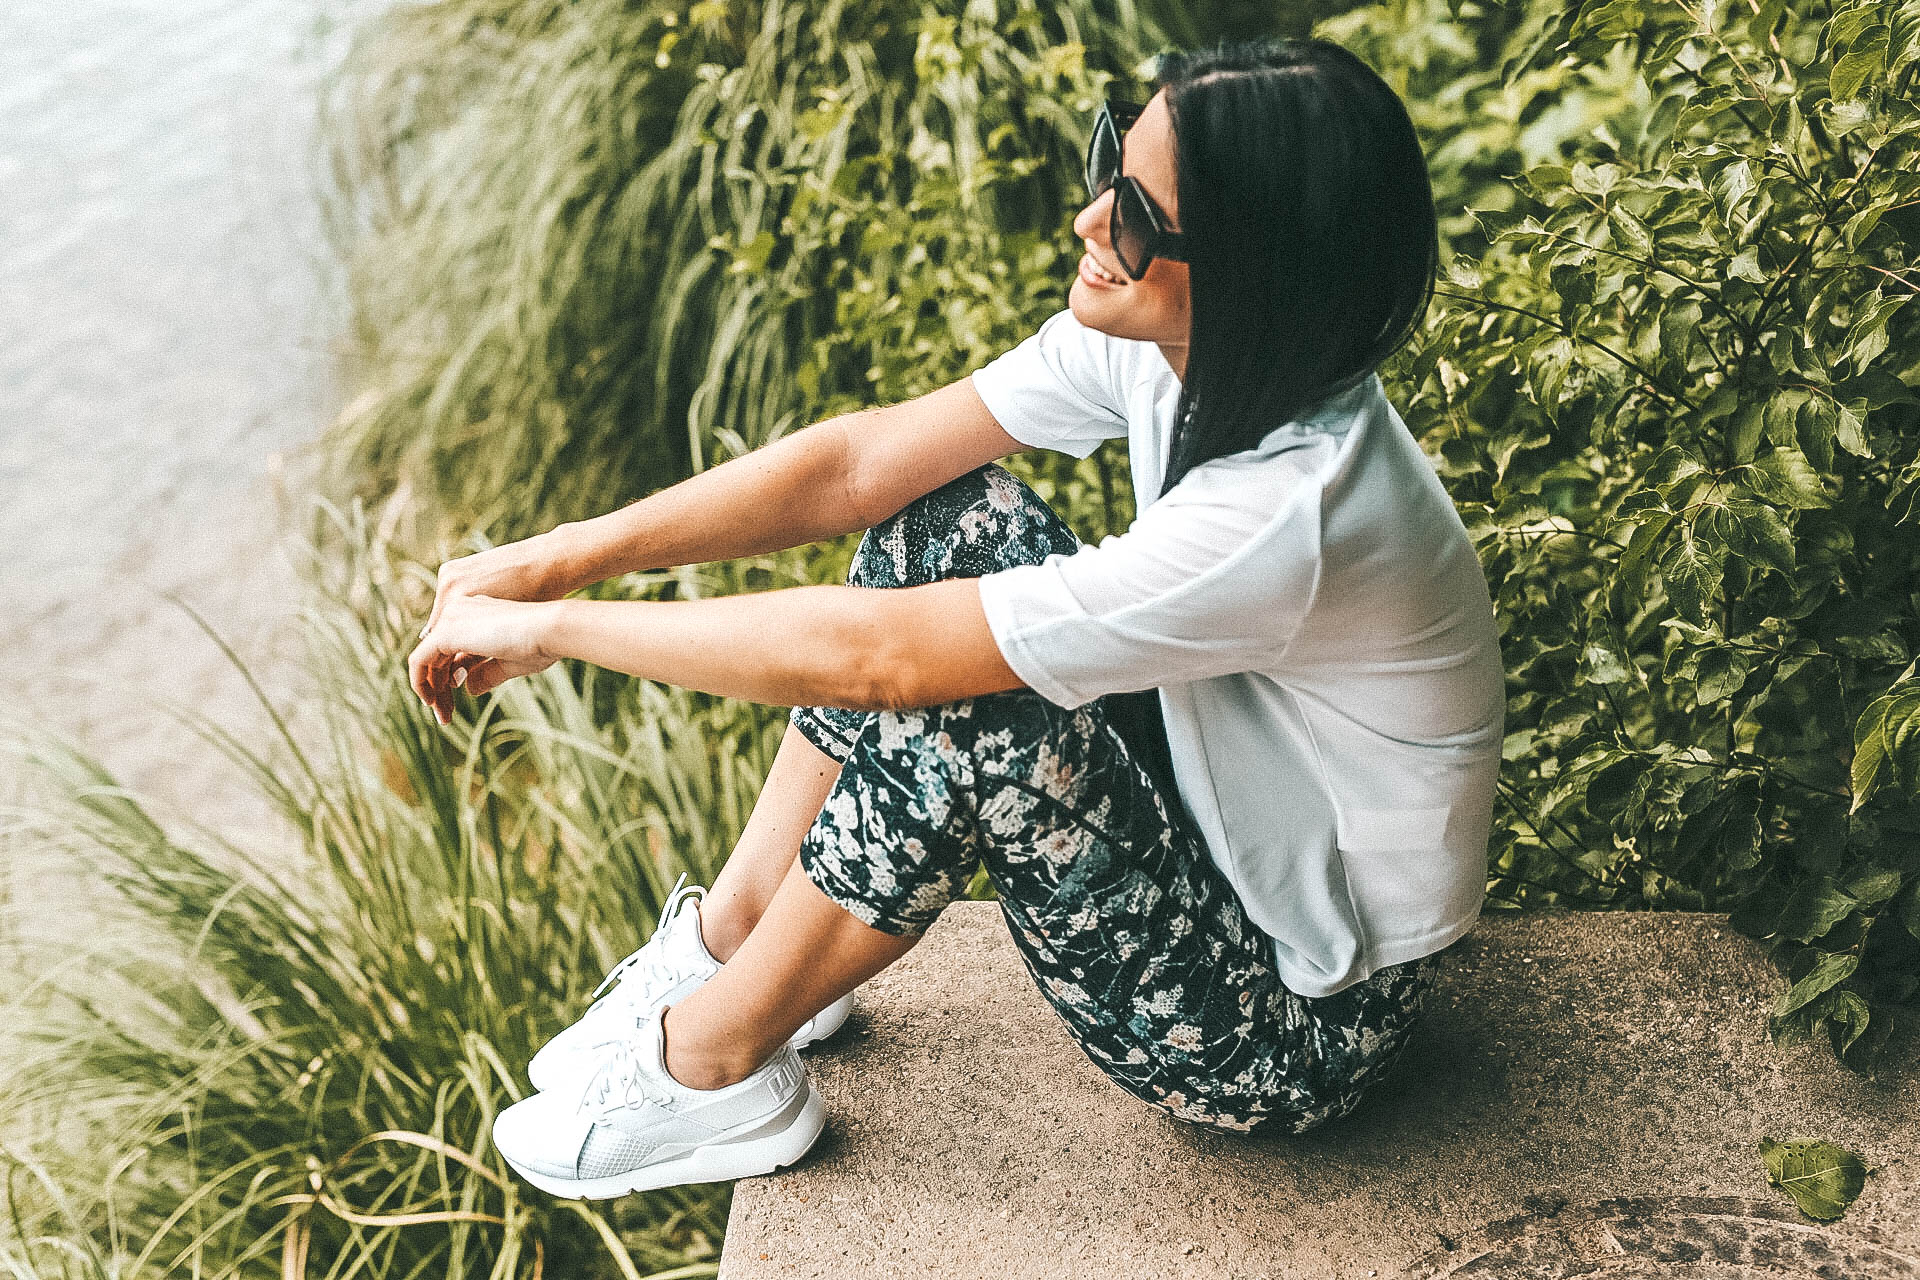 DTKAustin shares her go-to, affordable, workout and athleisure look with Puma and Zappos. Along with why this look makes her feel confident! - {Puma Muse Sneakers with Zappos} featured by popular Austin fashion blogger, Dressed to Kill